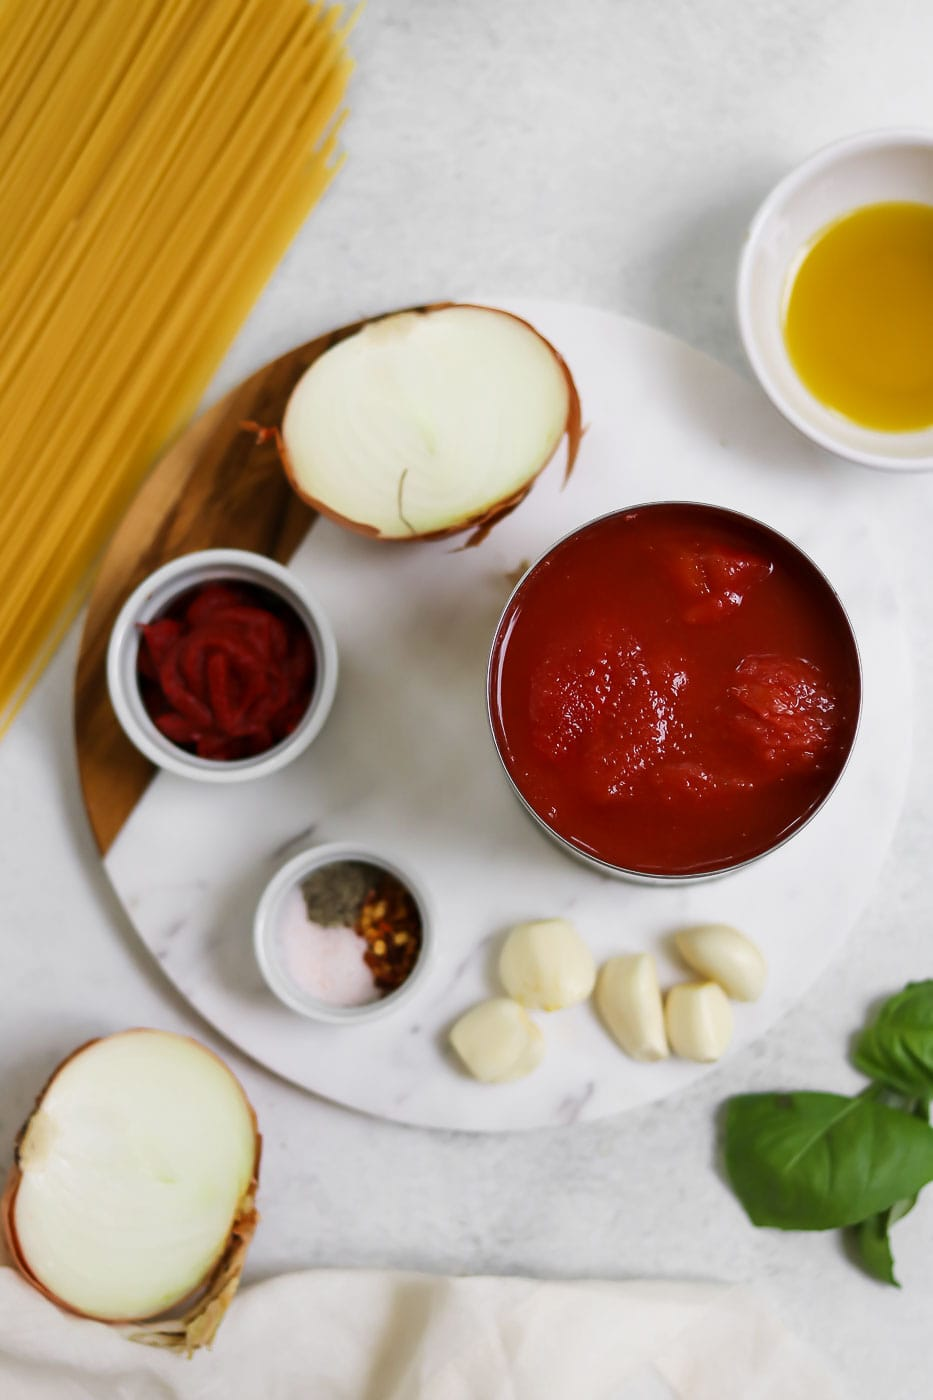 Ingredients for the recipe on a white backdrop.